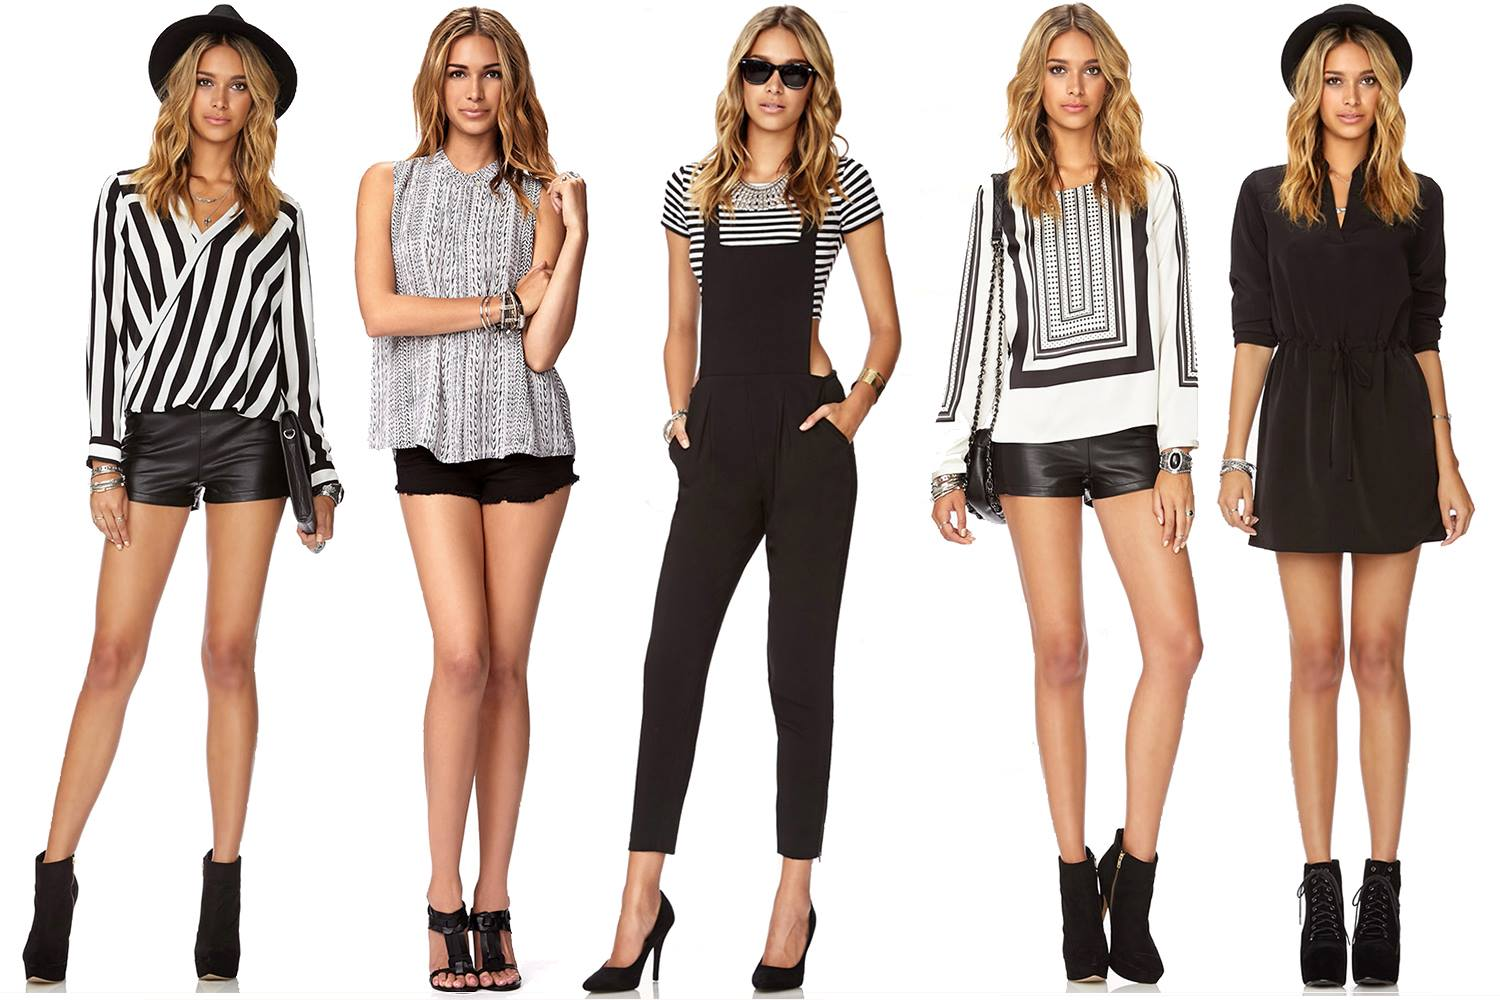 Essential Strategies For Price Comparisons on Women's Clothing